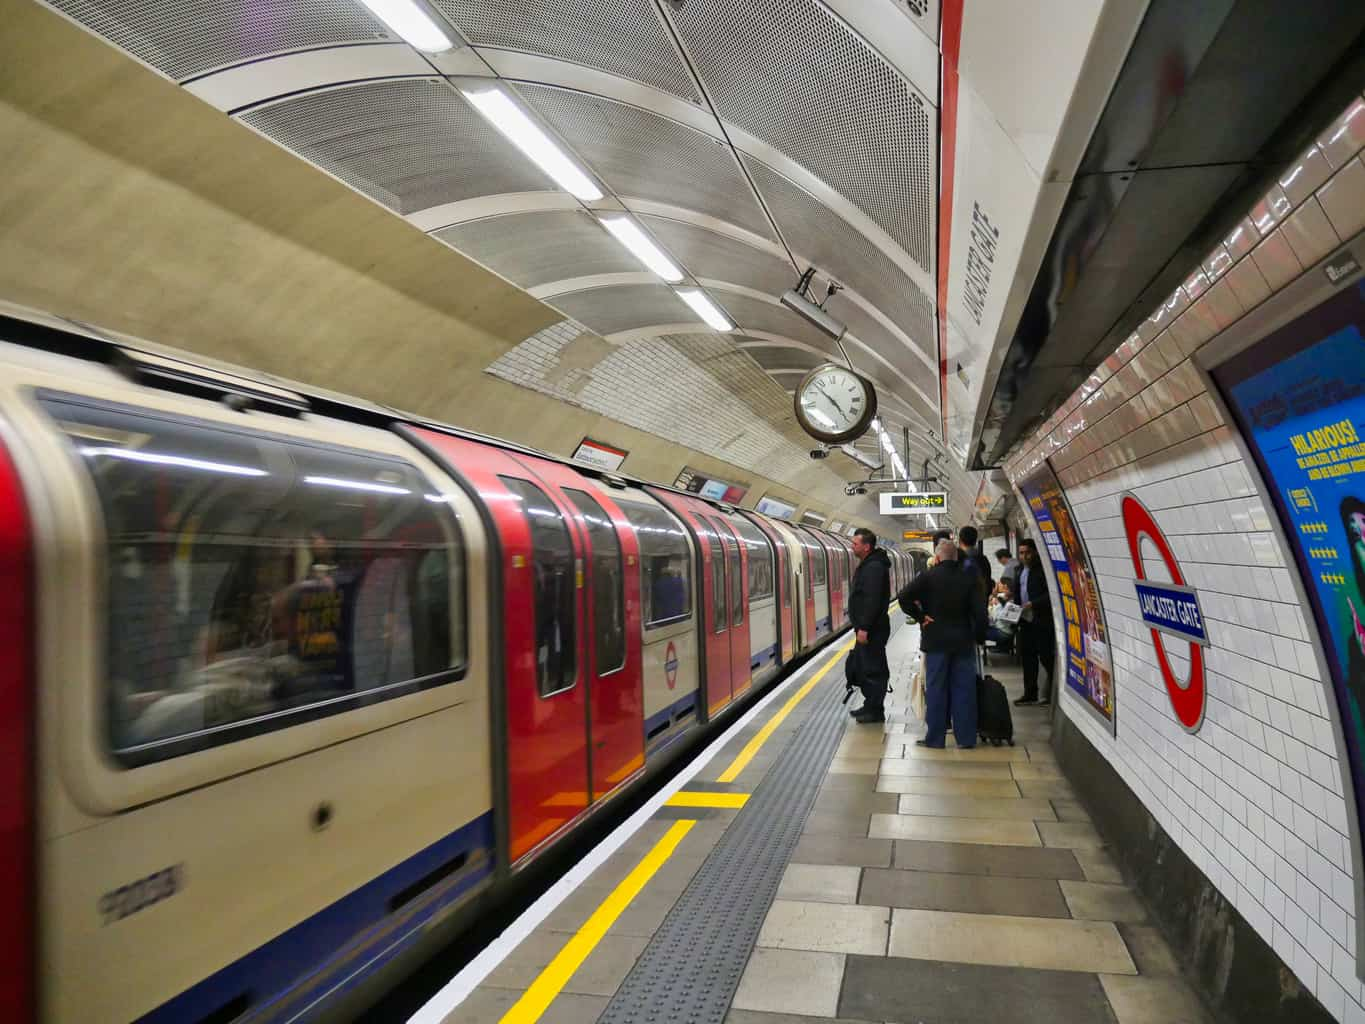 A London Underground train waiting at Lancaster Gate with people waiting to get on